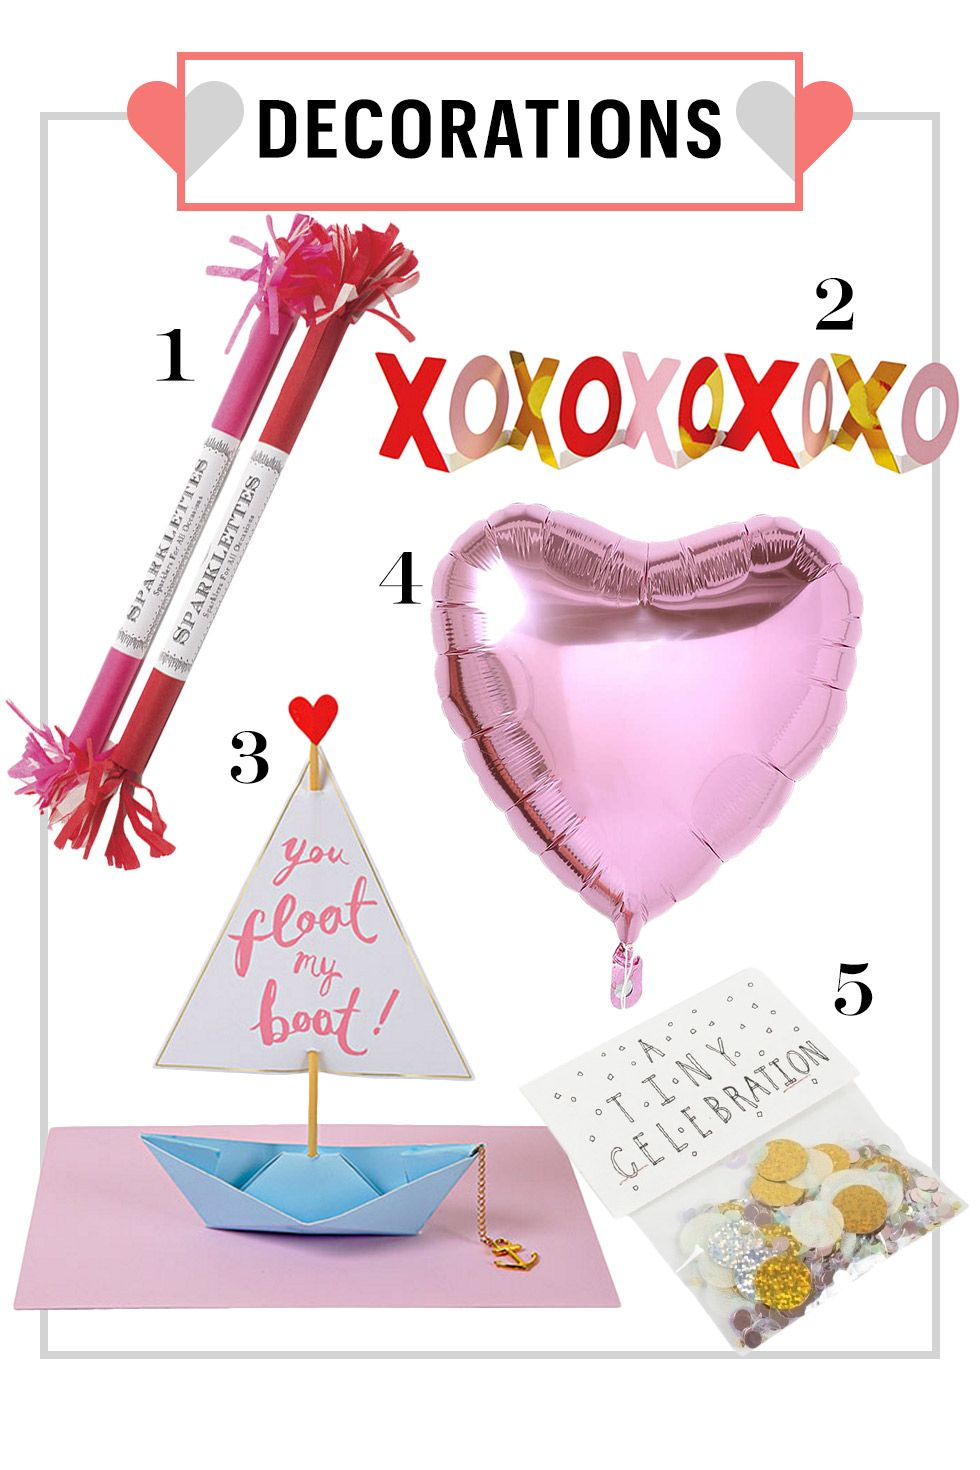 "<p>Spruce up your place with V-day themed decorations. Not into that? Sprinkling glitter around your apartment is always an option (though be warned, one of our editors is still finding glitter from her last Galentine's Day celebration).</p><p><strong>1.</strong> Sparklettes in Romance, $13.50&#x3B; <a href=""http://topsmalibu.com/collections/sparklers/products/sparklettes-romance-8"">topsmalibu.com</a>. </p><p><strong>2.</strong> XOXO Banner, $6.95&#x3B; <a href=""http://www.shopmerimeri.com/xoxobanner.aspx"">shopmerimeri.com</a>. </p><p><strong>3.</strong> Float My Boat Origami, $6.95&#x3B; <a href=""http://www.shopmerimeri.com/floatmyboatorigami.aspx"">shopmerimeri.com</a>. </p><p><strong>4.</strong> Foil Heart Party Balloon, $4&#x3B; <a href=""http://www.urbanoutfitters.com/urban/catalog/productdetail.jsp?id=33589078&category=A_GAMES_PARTY"">urbanoutfitters.com</a>. </p><p><strong>5.</strong> A Tiny Celebration Glitter Confetti, $8&#x3B; <a href=""http://www.catbirdnyc.com/home-gifts/a-tiny-celebration-glitter-confetti.html"">catbirdnyc.com</a>.  </p>"